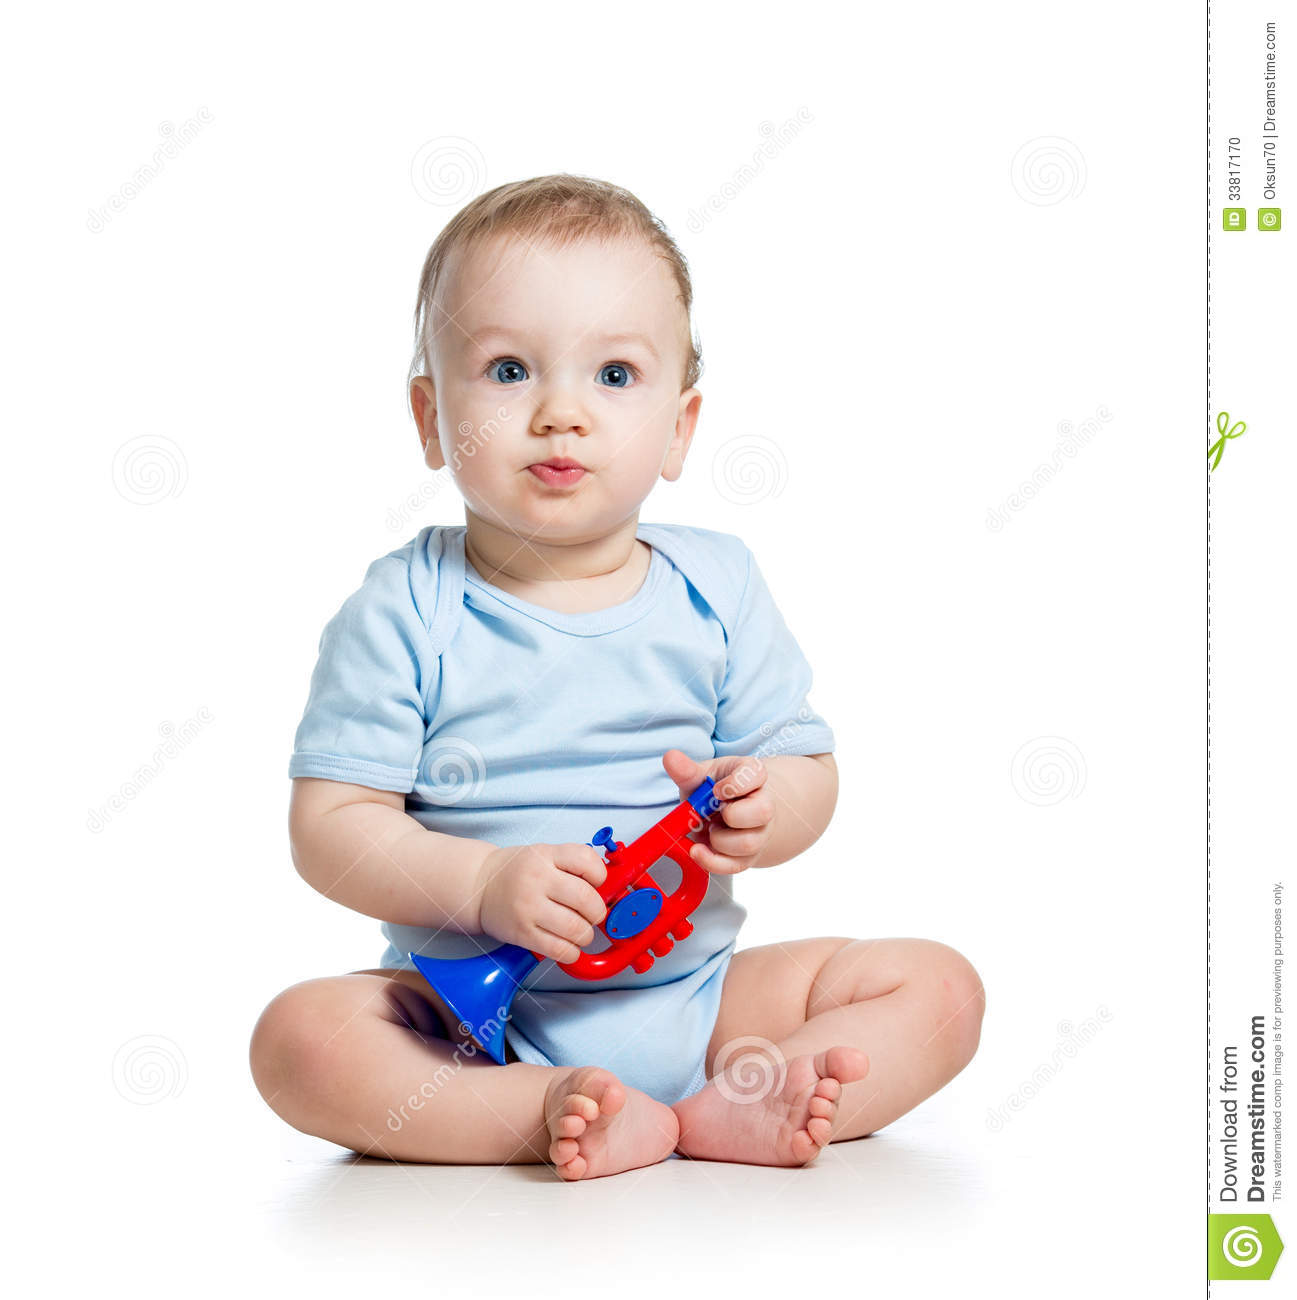 Musical Toys For Toddlers Boys : Boy baby playing toy stock photo image of musical young